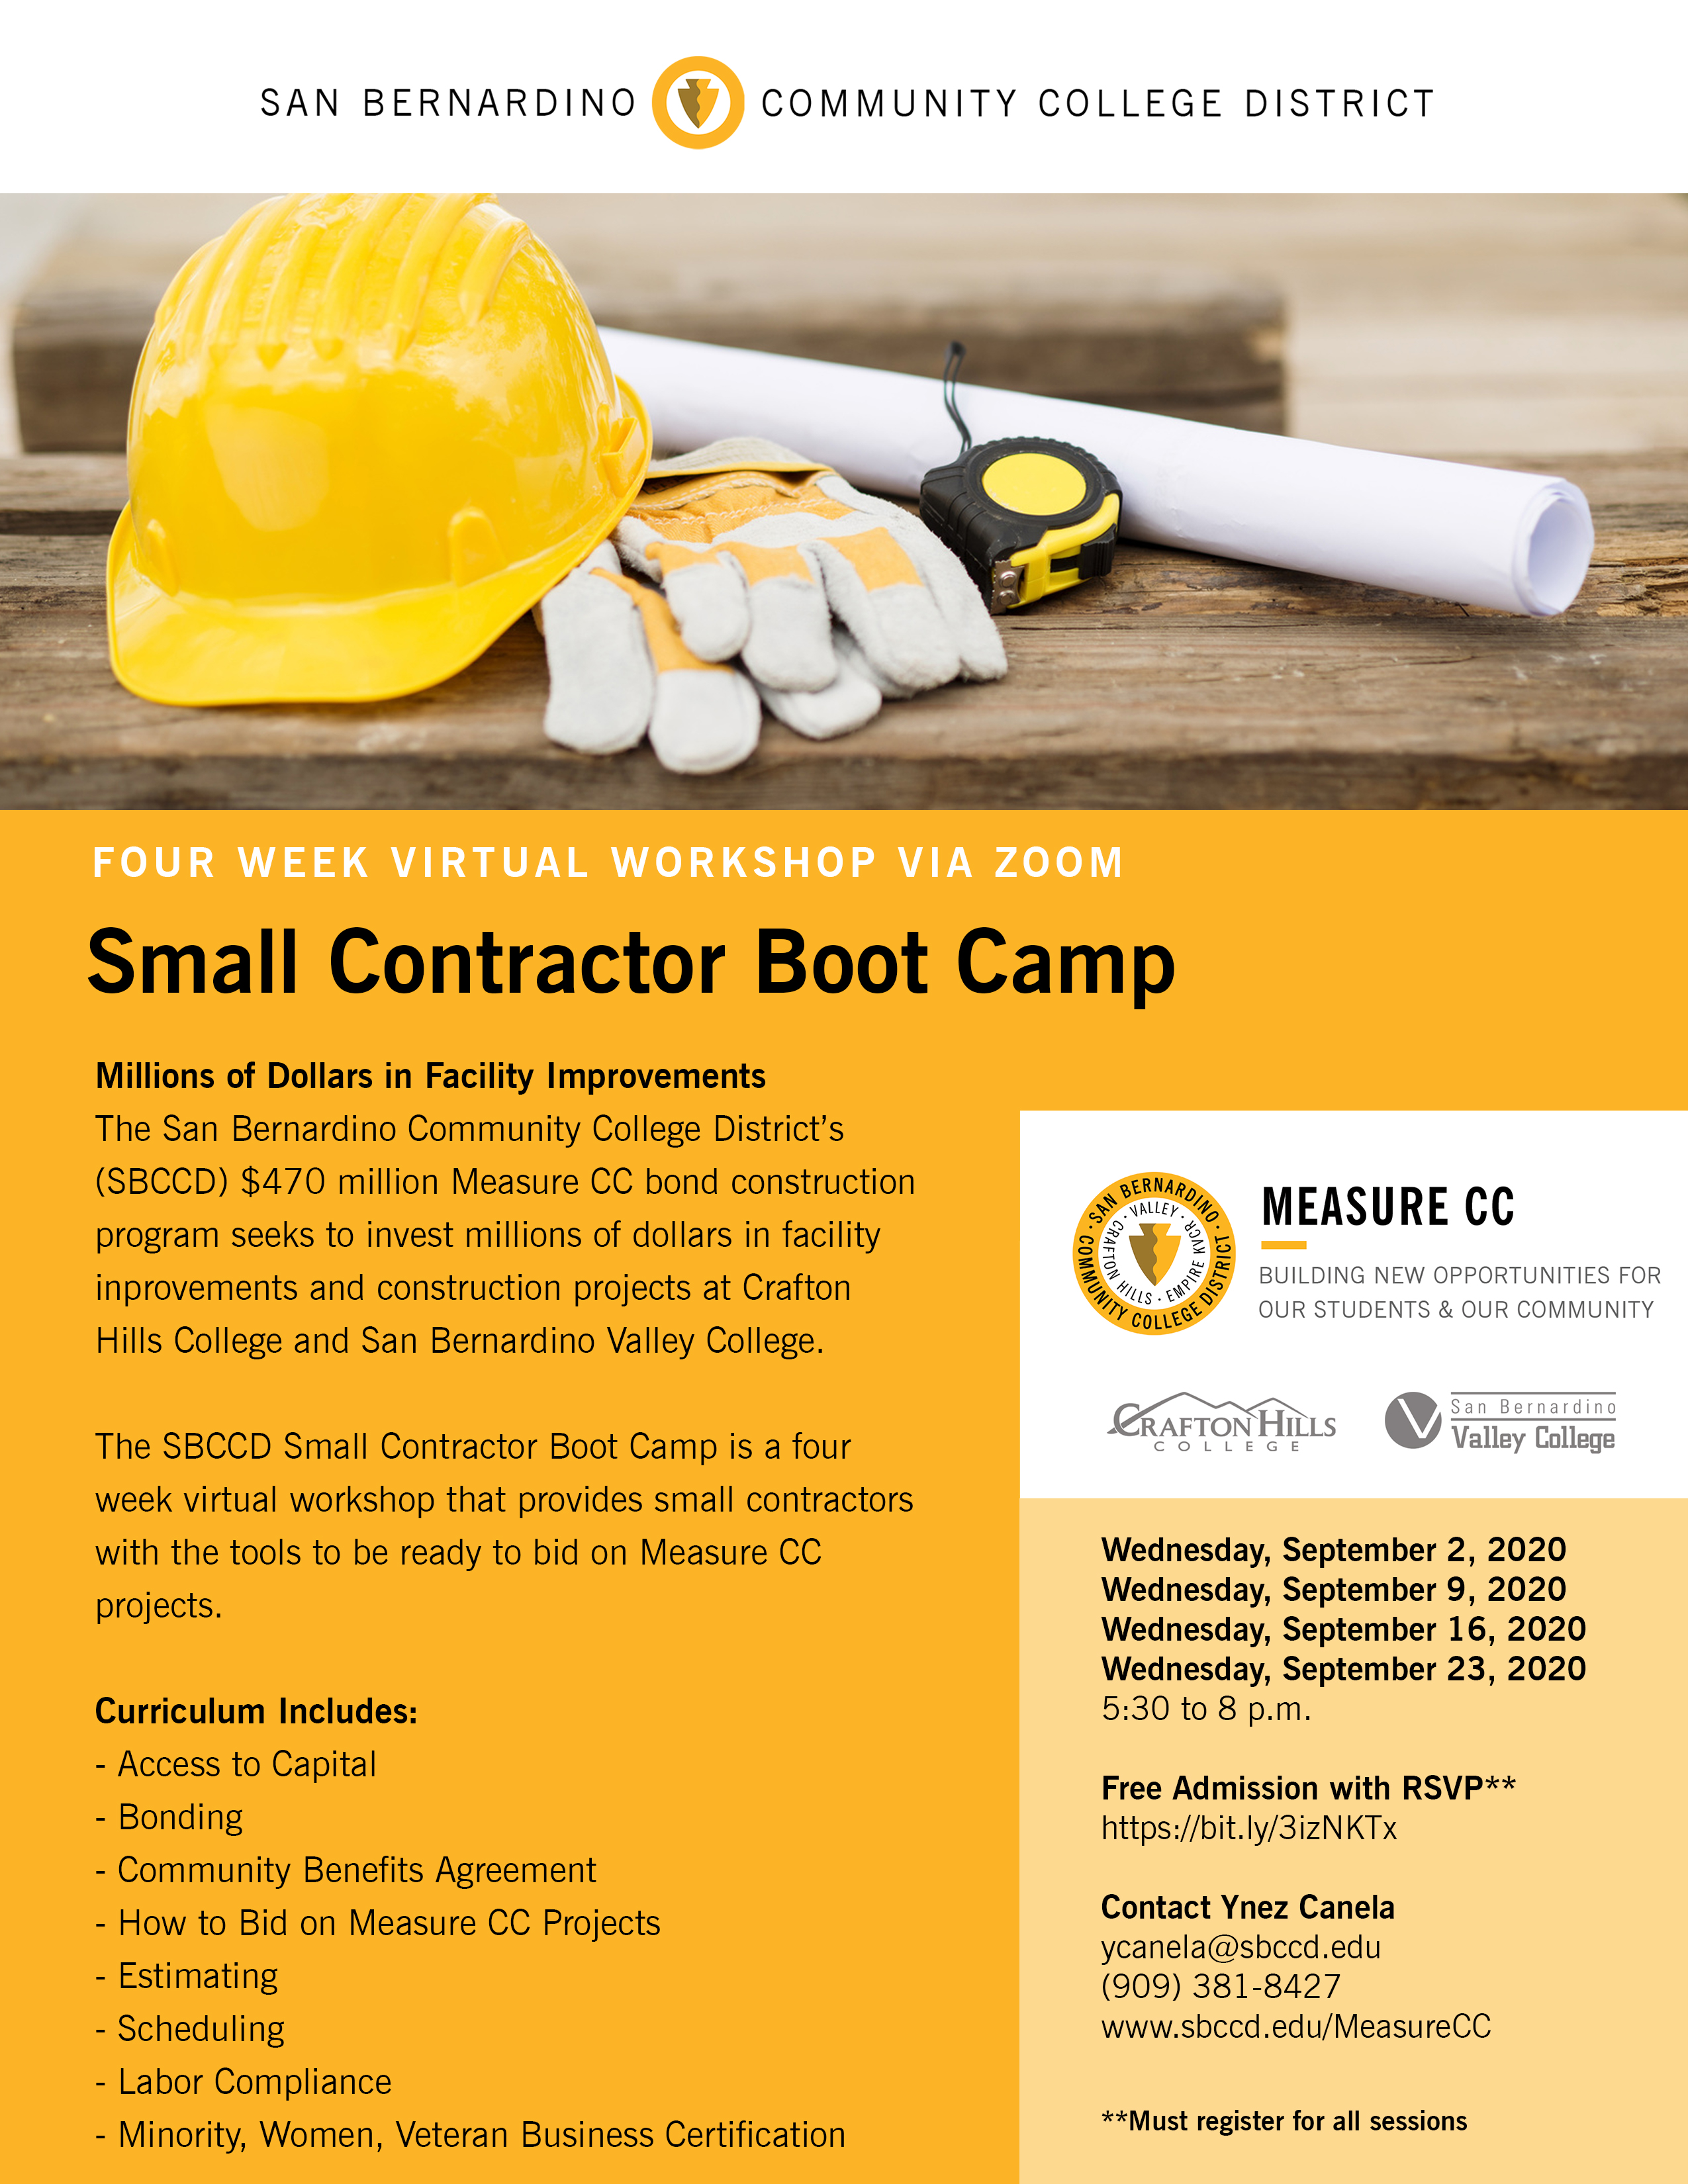 four week virtual small contractor boot camp flyer